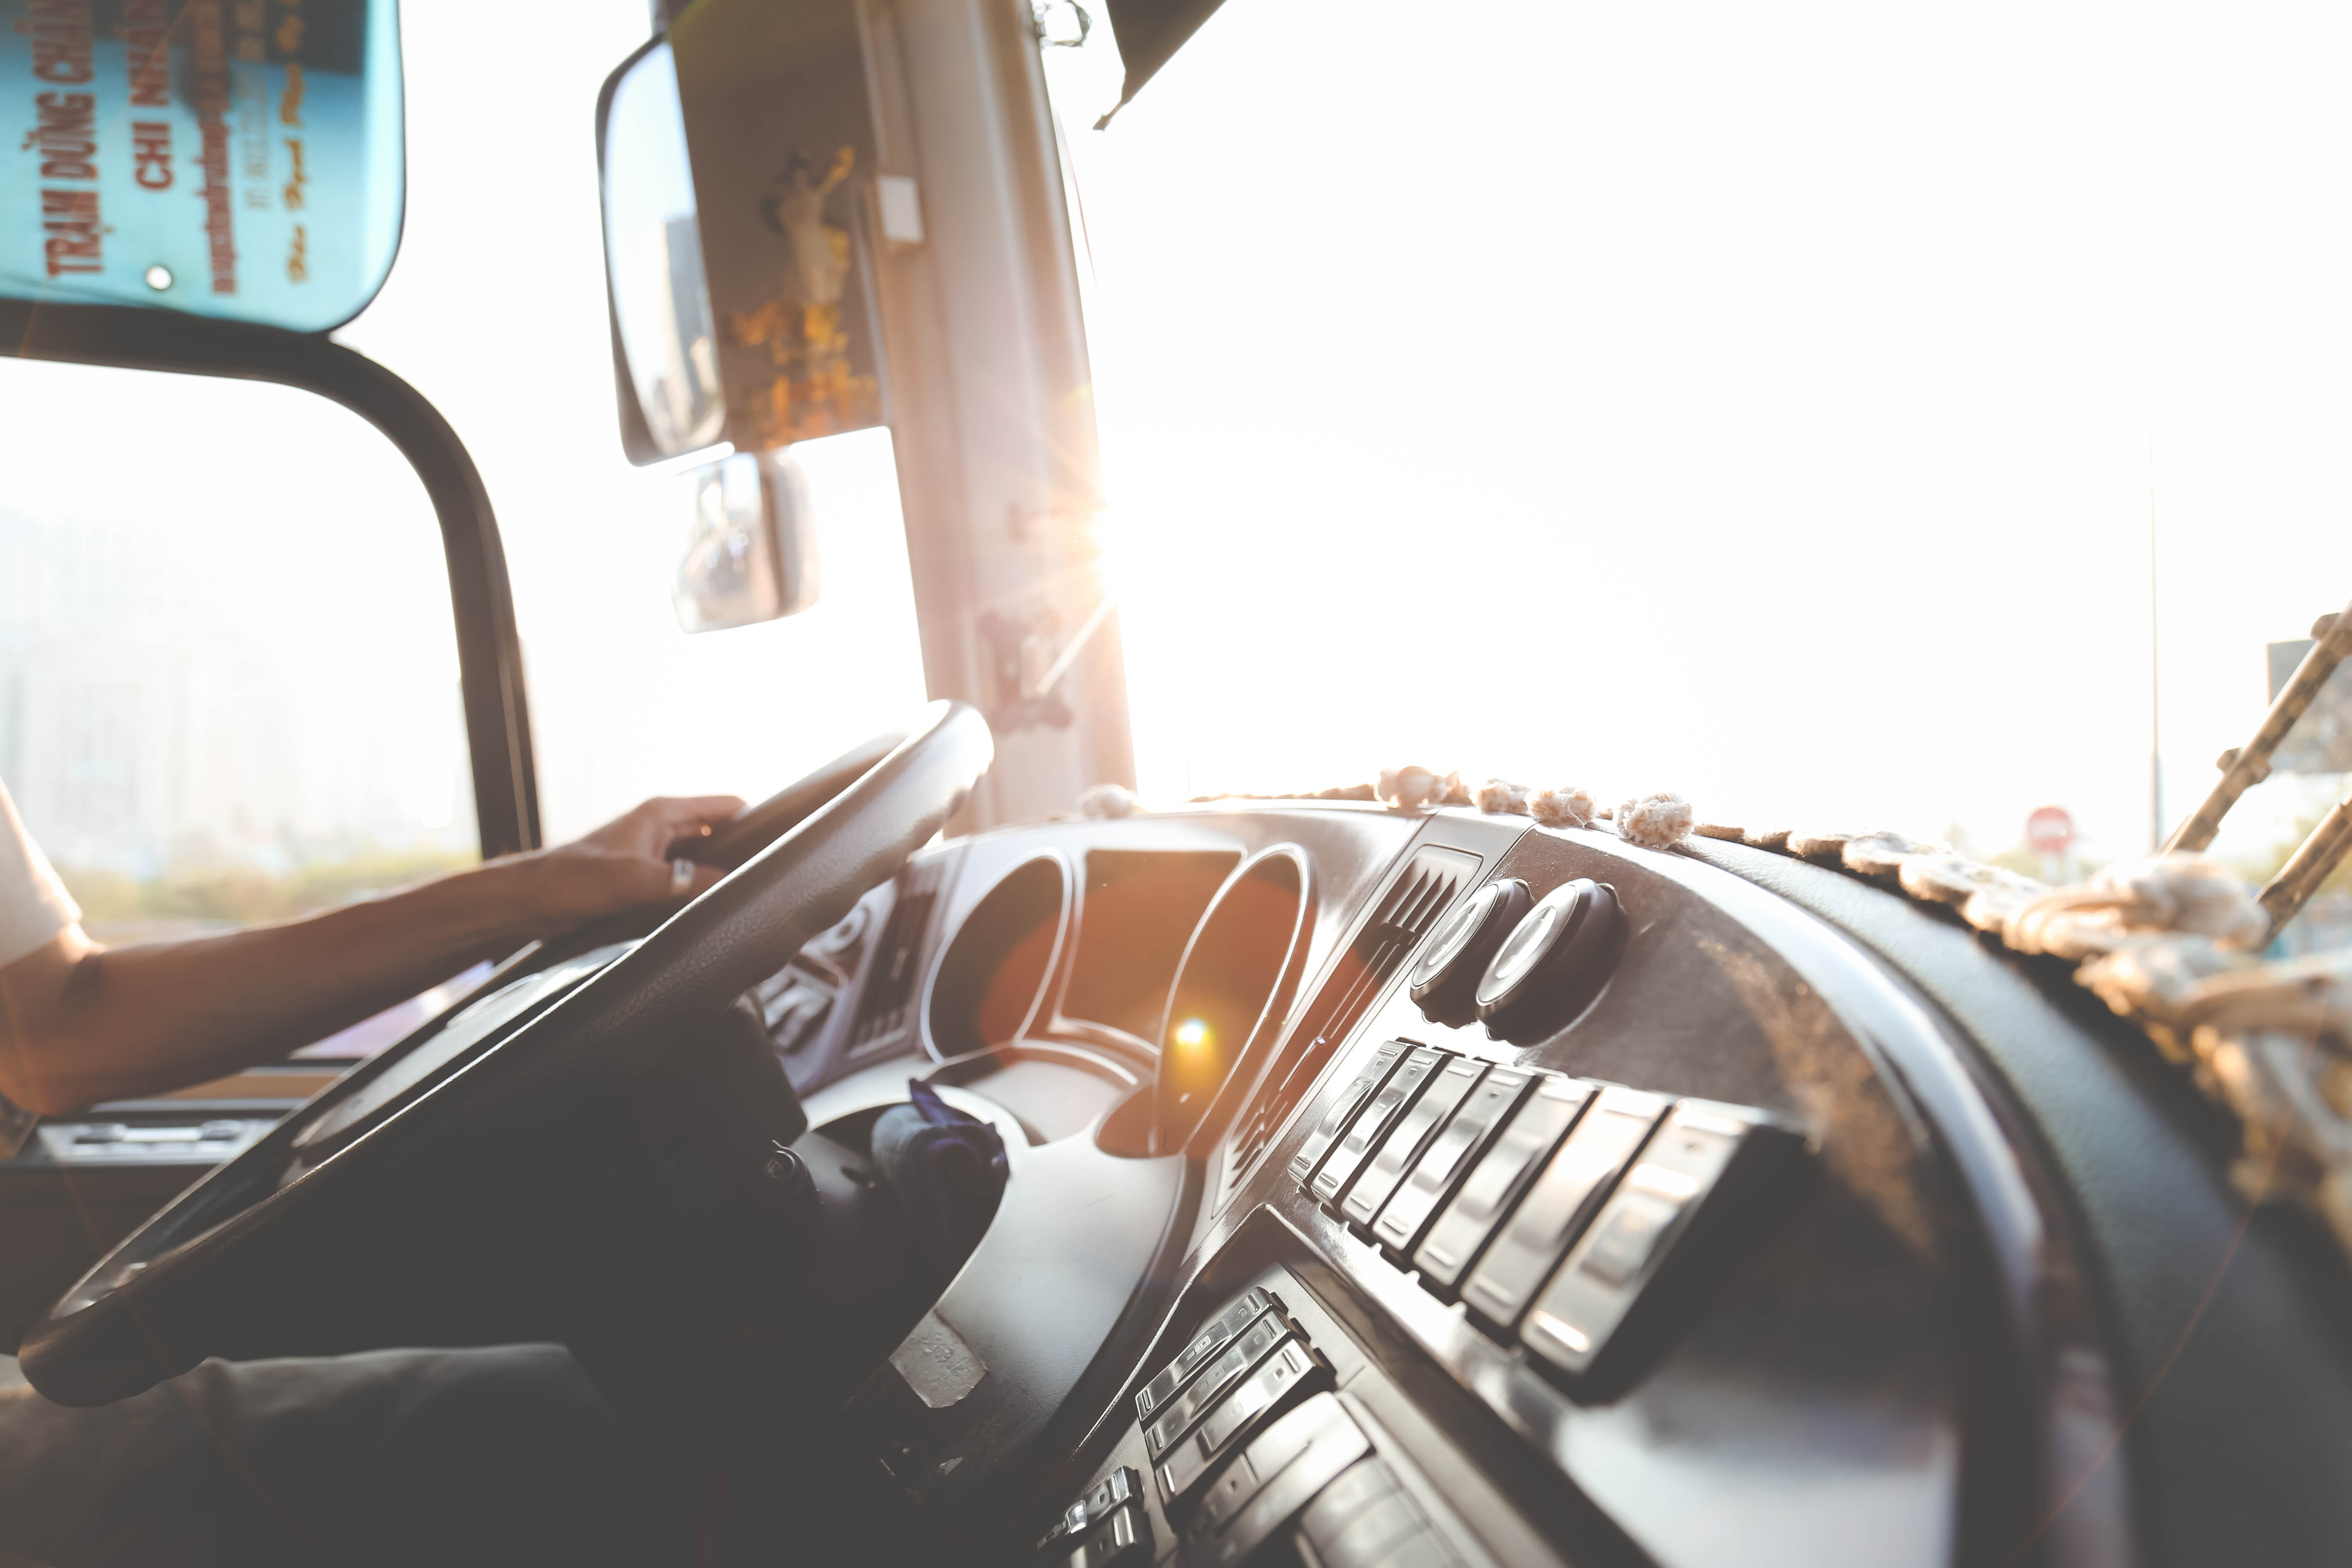 Fleet Managers: Protecting Your Drivers From Fatigue